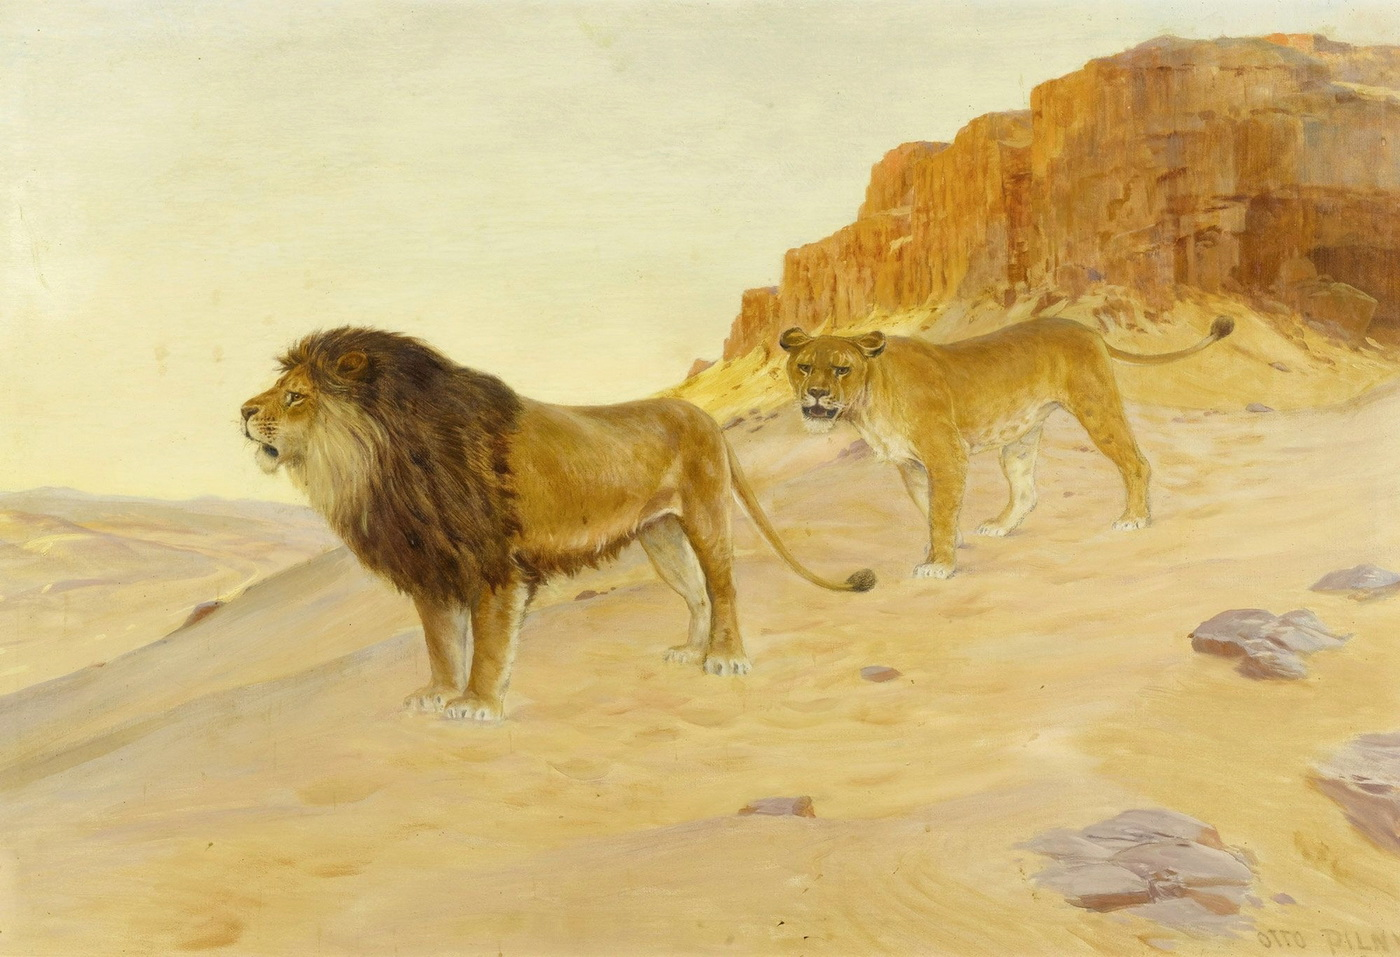 Otto Pilny 1866-1936 1926 Pair of lions in the desert before red cliffs-1400